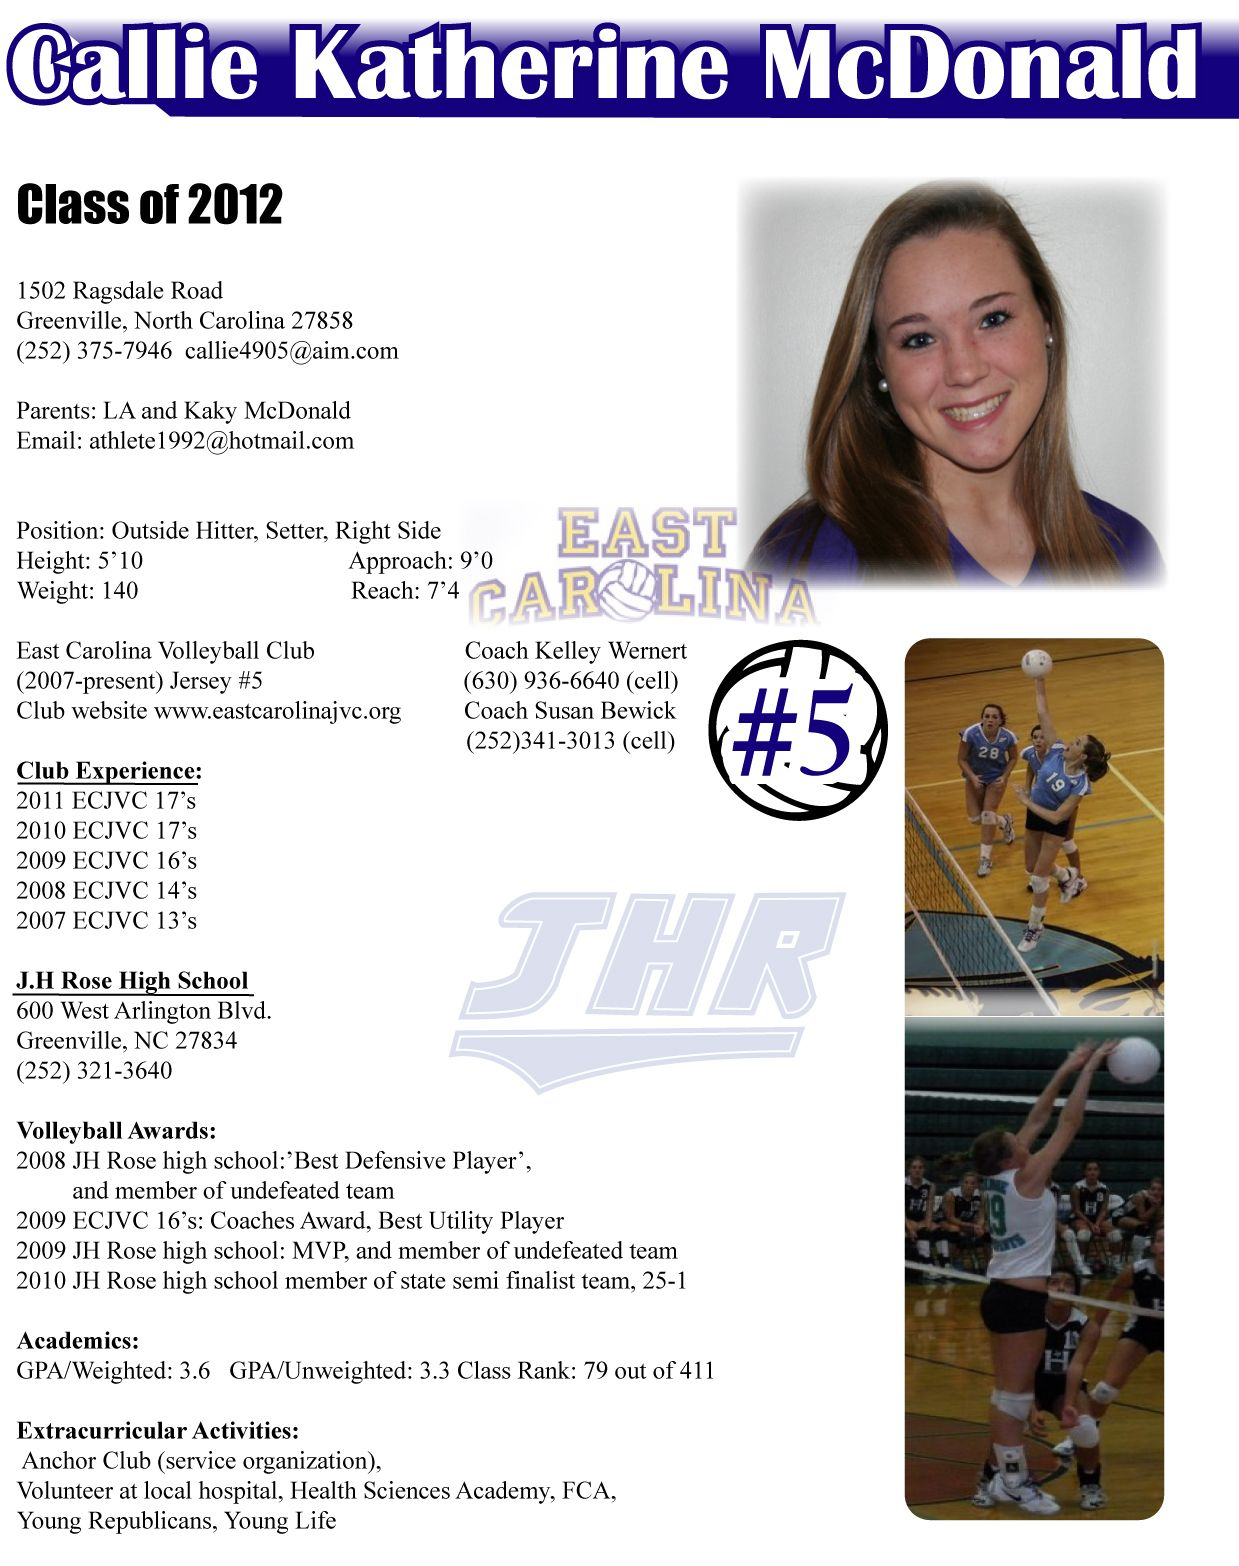 callie recruiting flyer resume sports resumes recruiting flyers